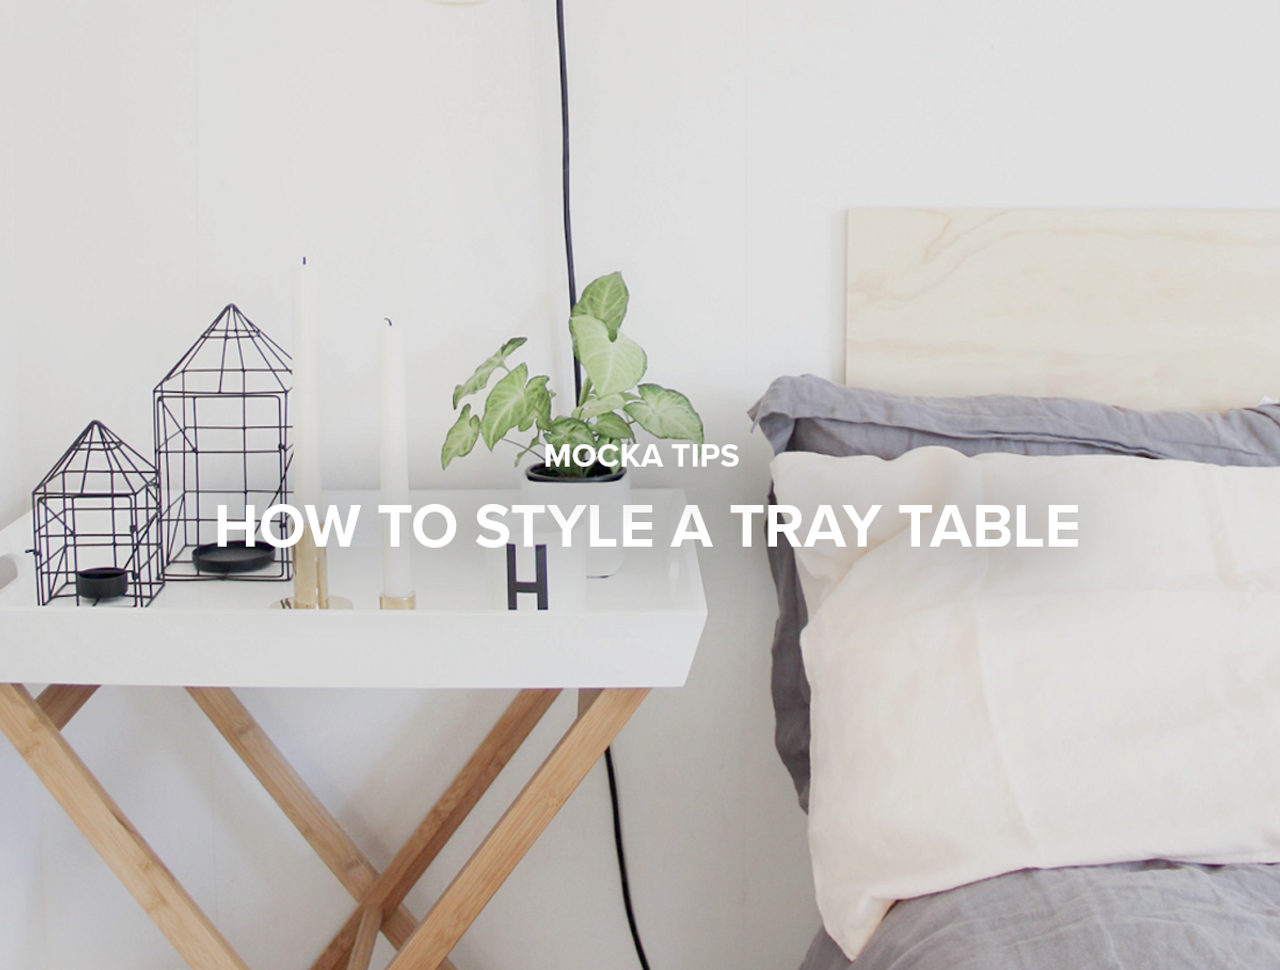 Mocka Tips: How to Style a Tray Table